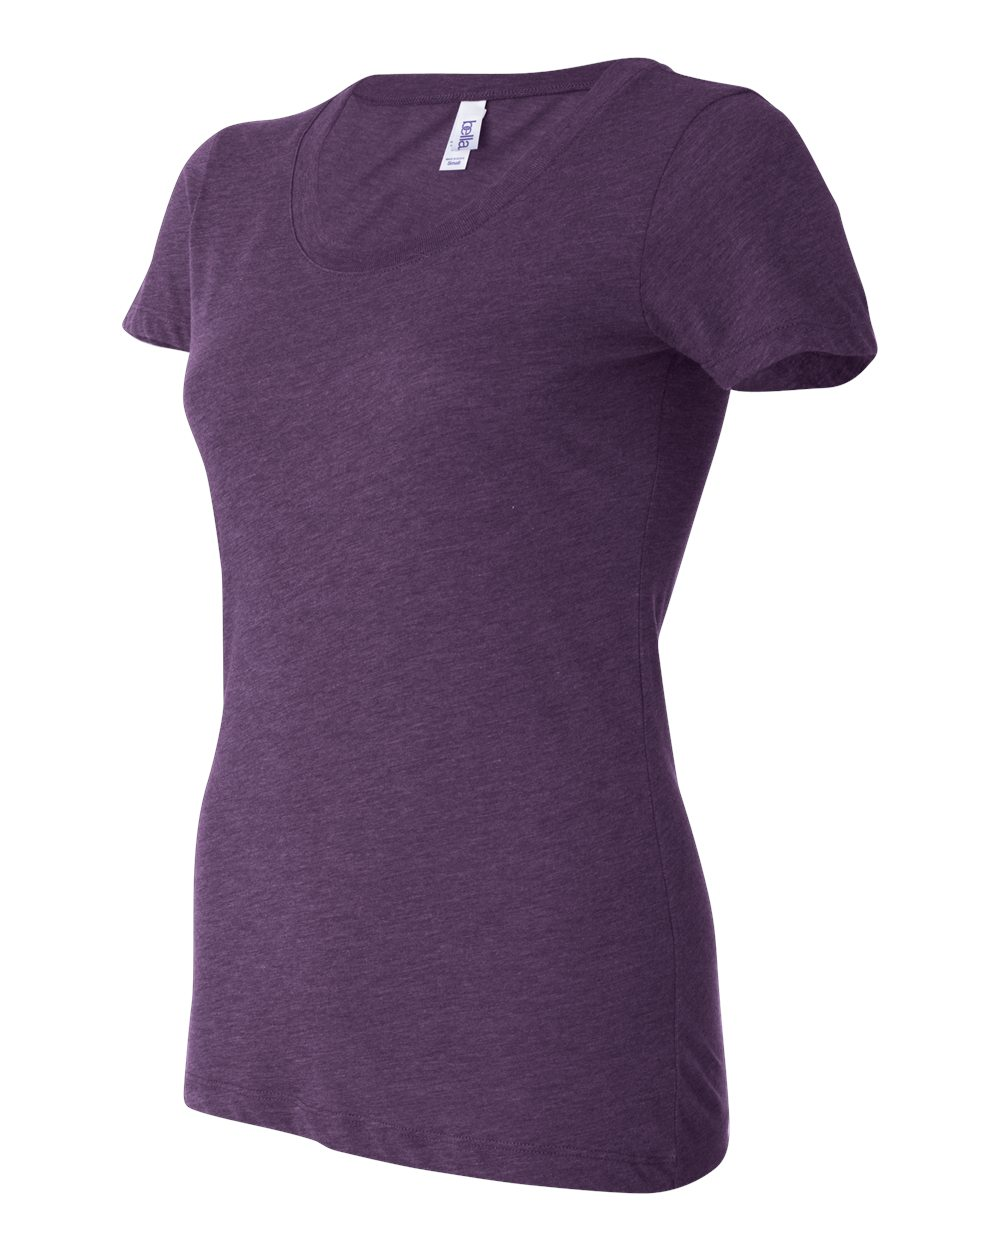 Bella-Canvas-Women-039-s-Triblend-Short-Sleeve-T-Shirt-B8413-S-2XL thumbnail 12